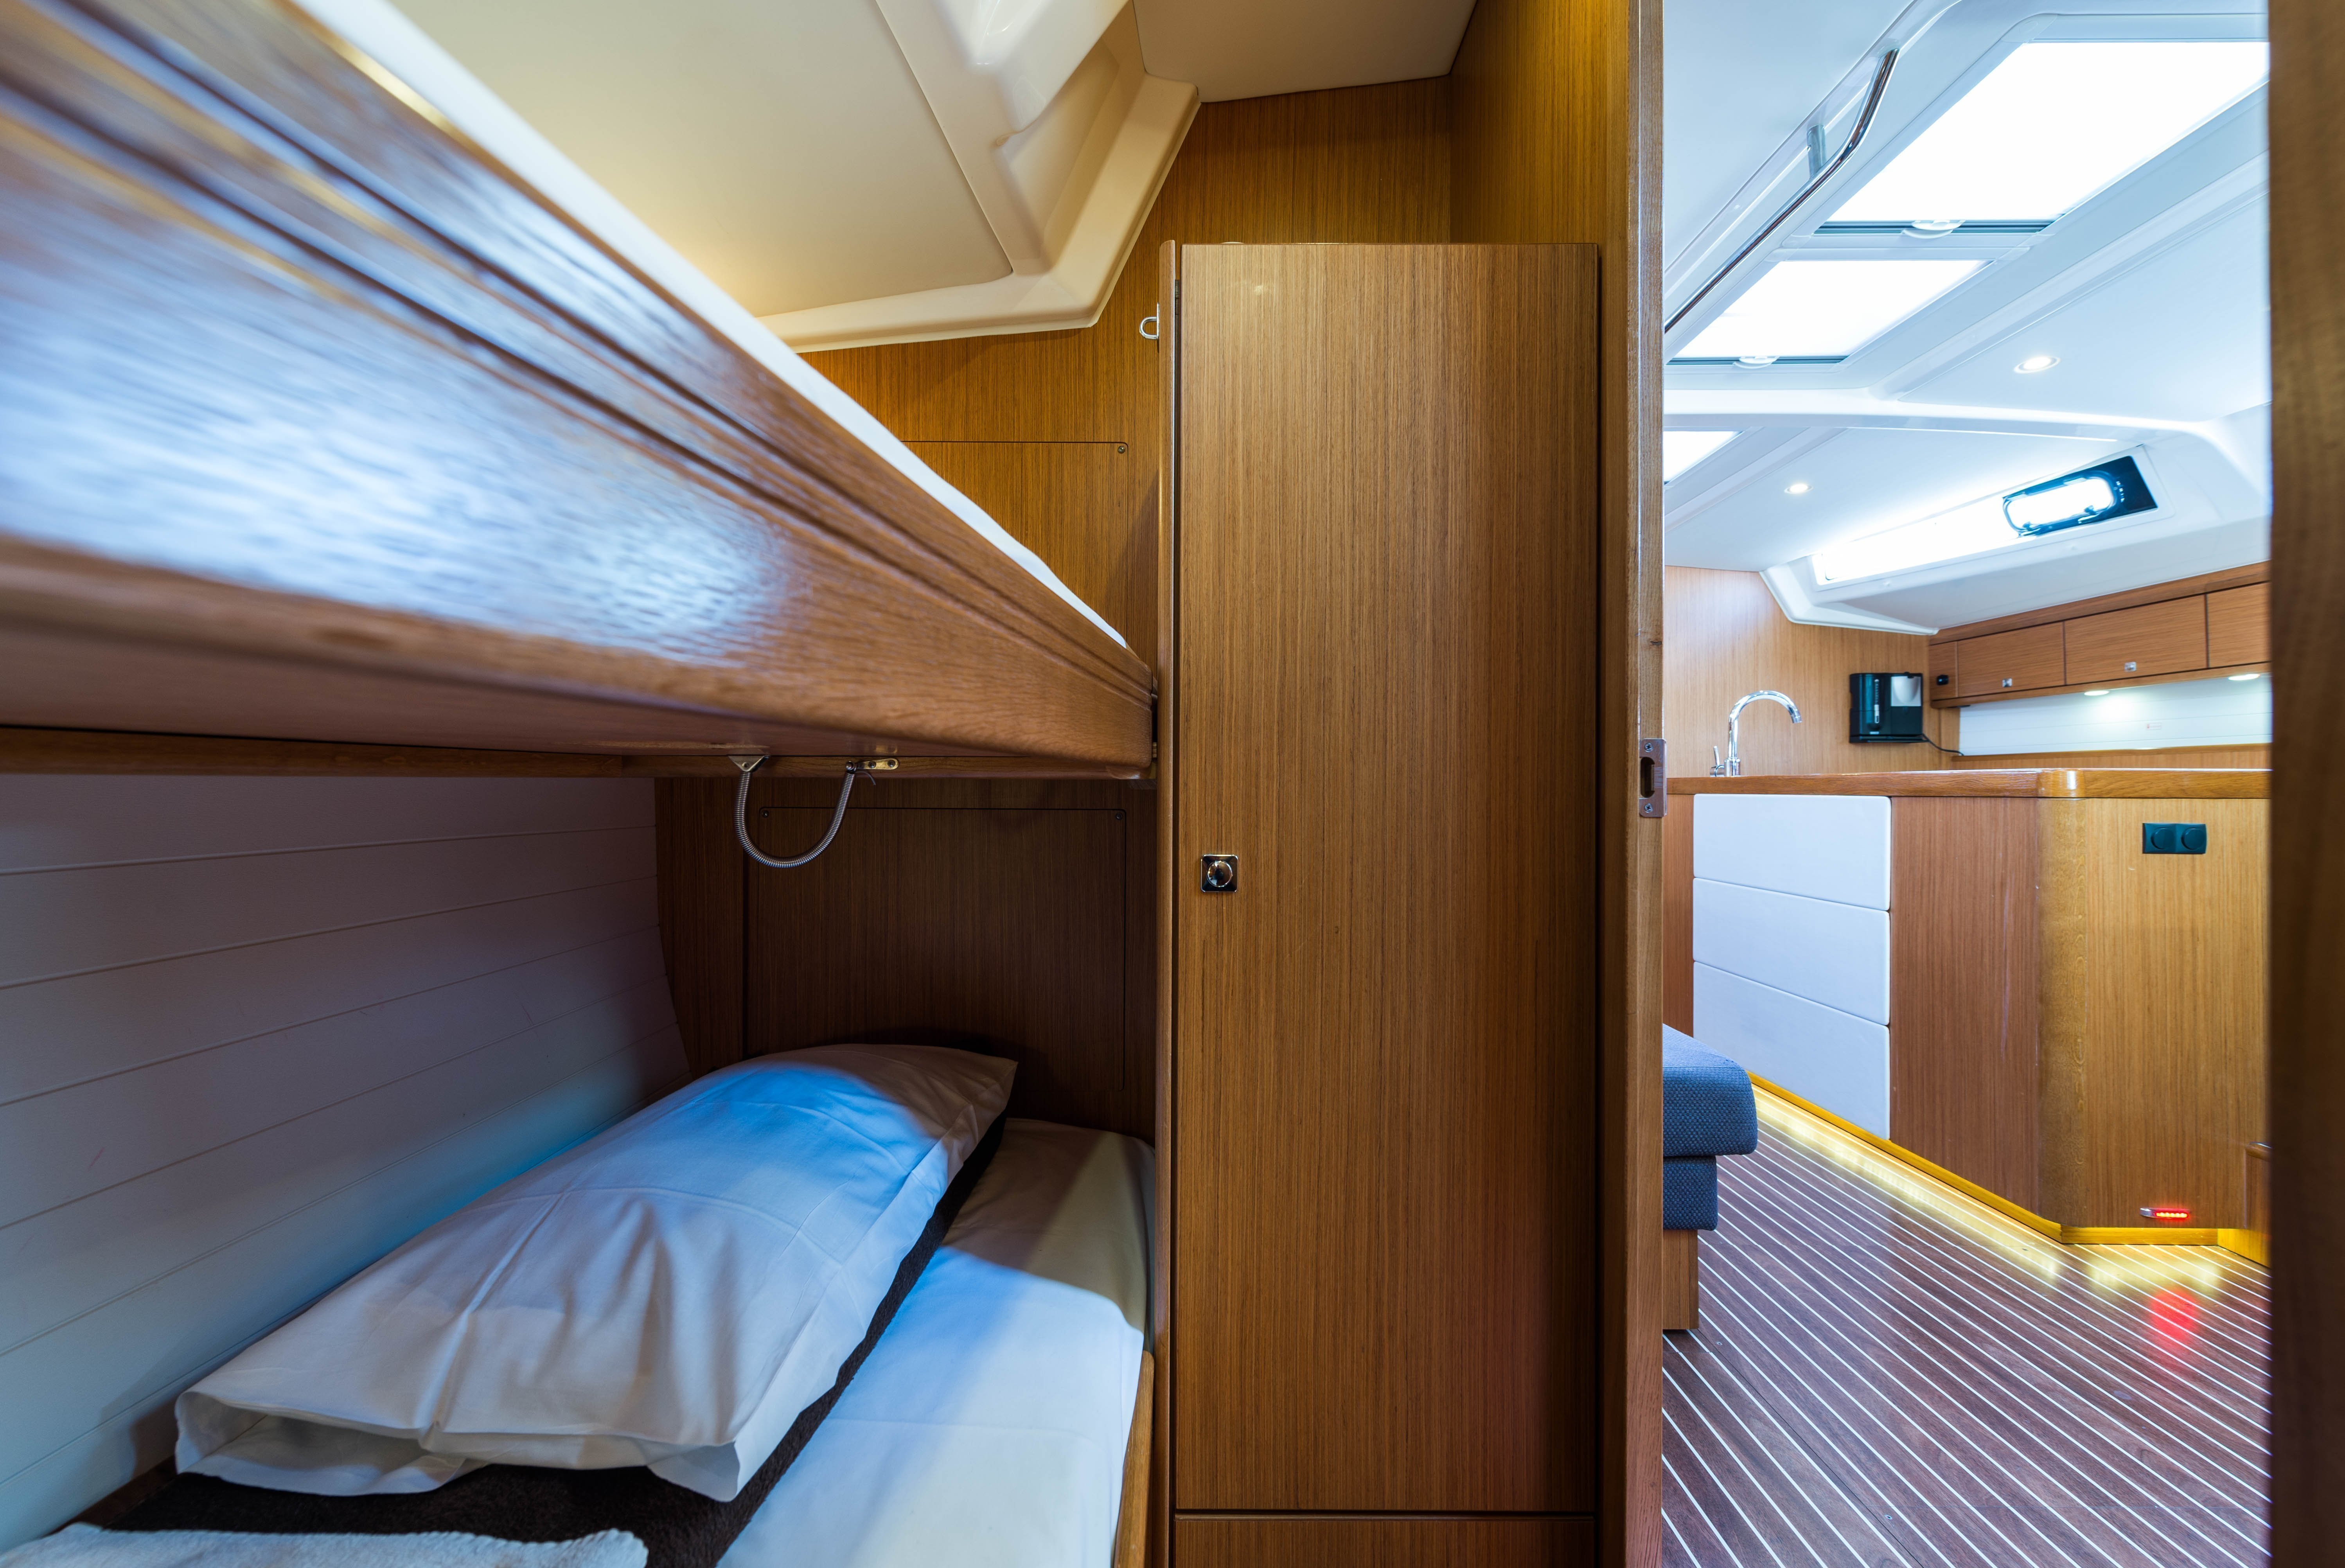 Bavaria Cruiser 56 (Breathless - A/C & Generator)  - 72